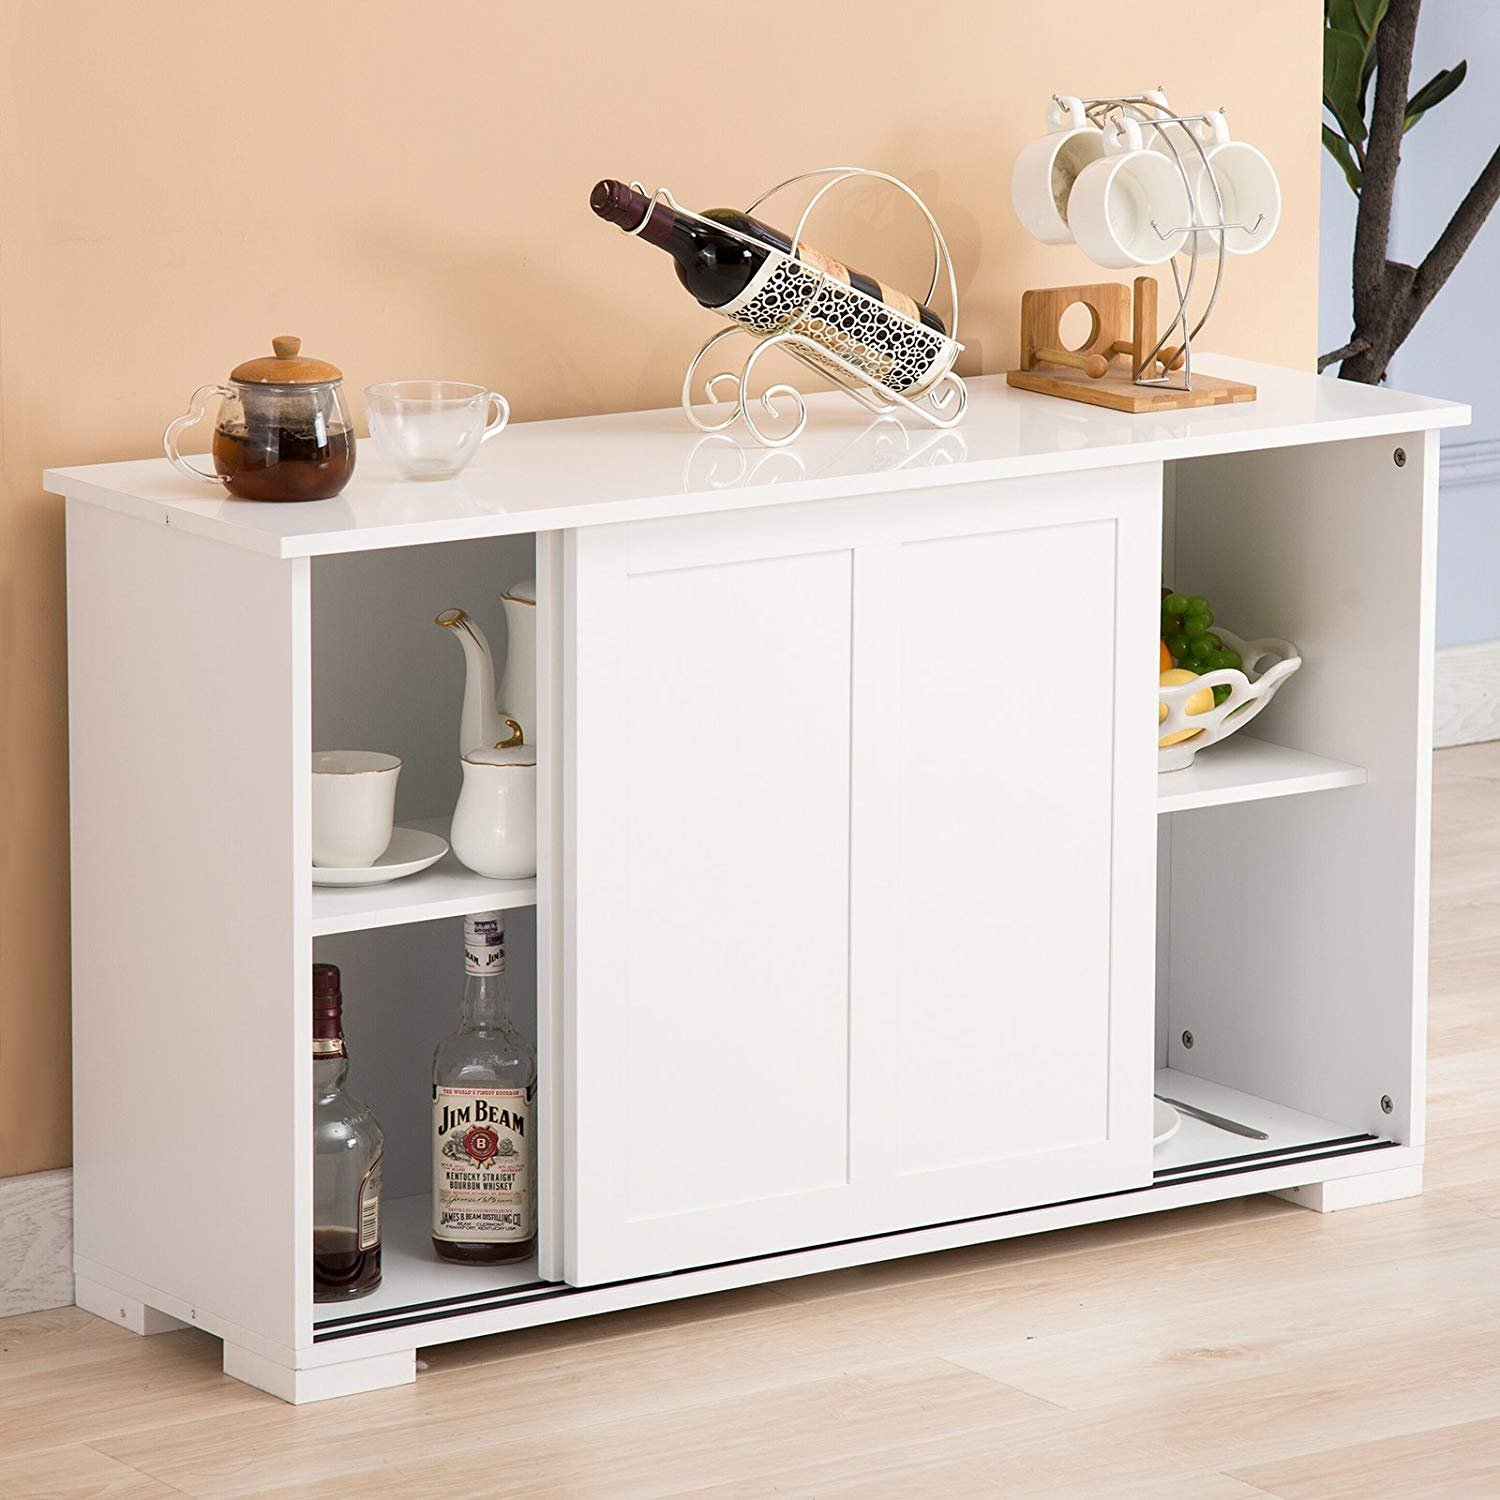 Mecor Kitchen Cupboard Buffet Storage Cabinet Sideboard 2 Sliding Doors/1 Shelf Dining Room Furniture, White